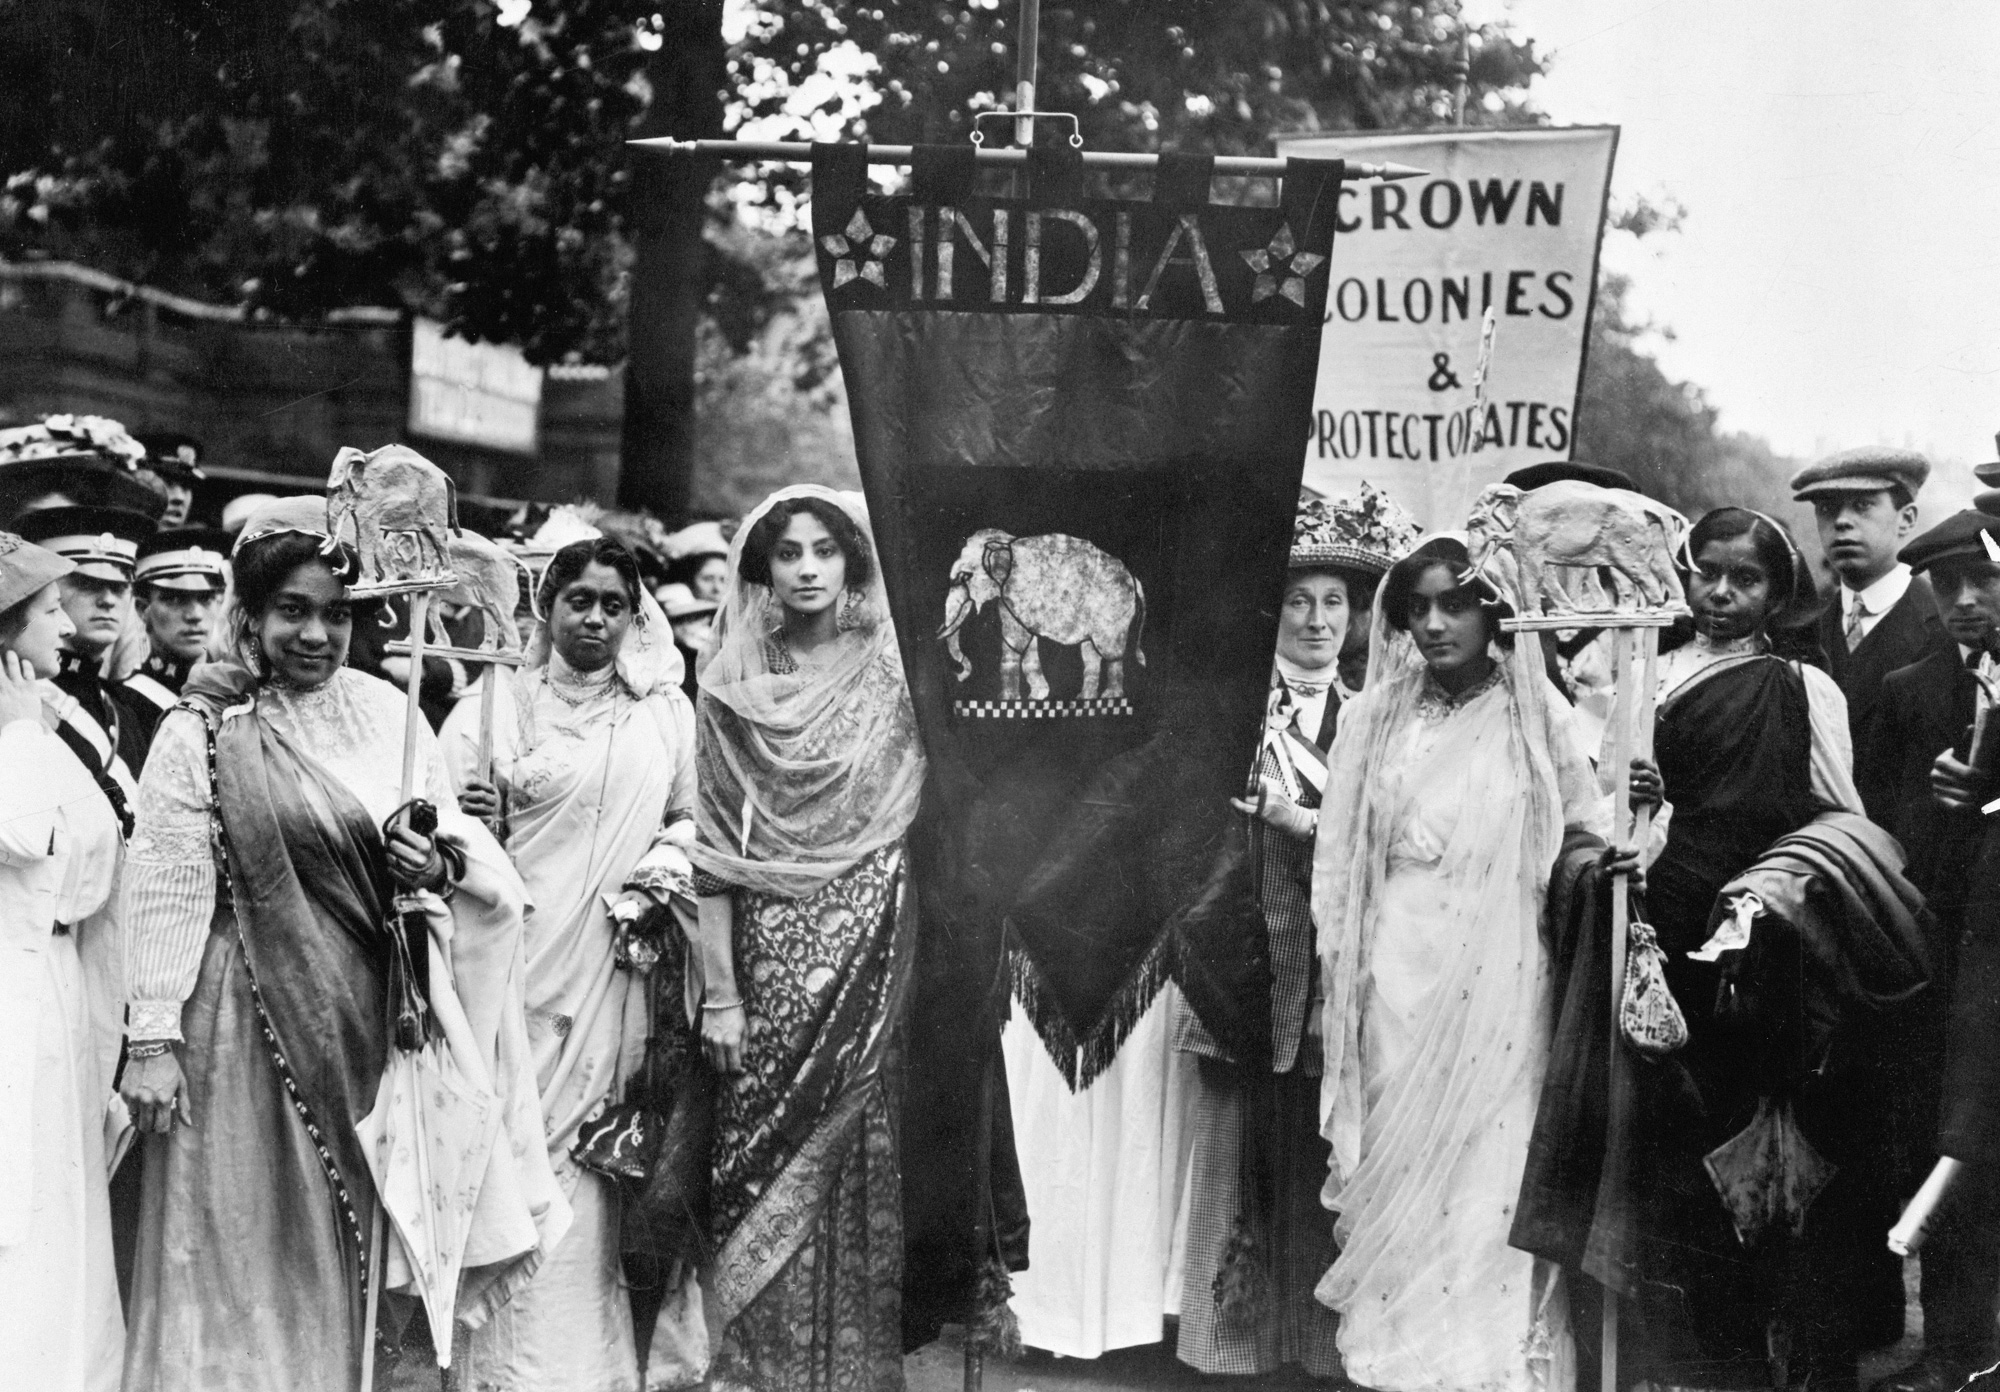 Photograph of Indian Suffragettes on the Women's Coronation Procession